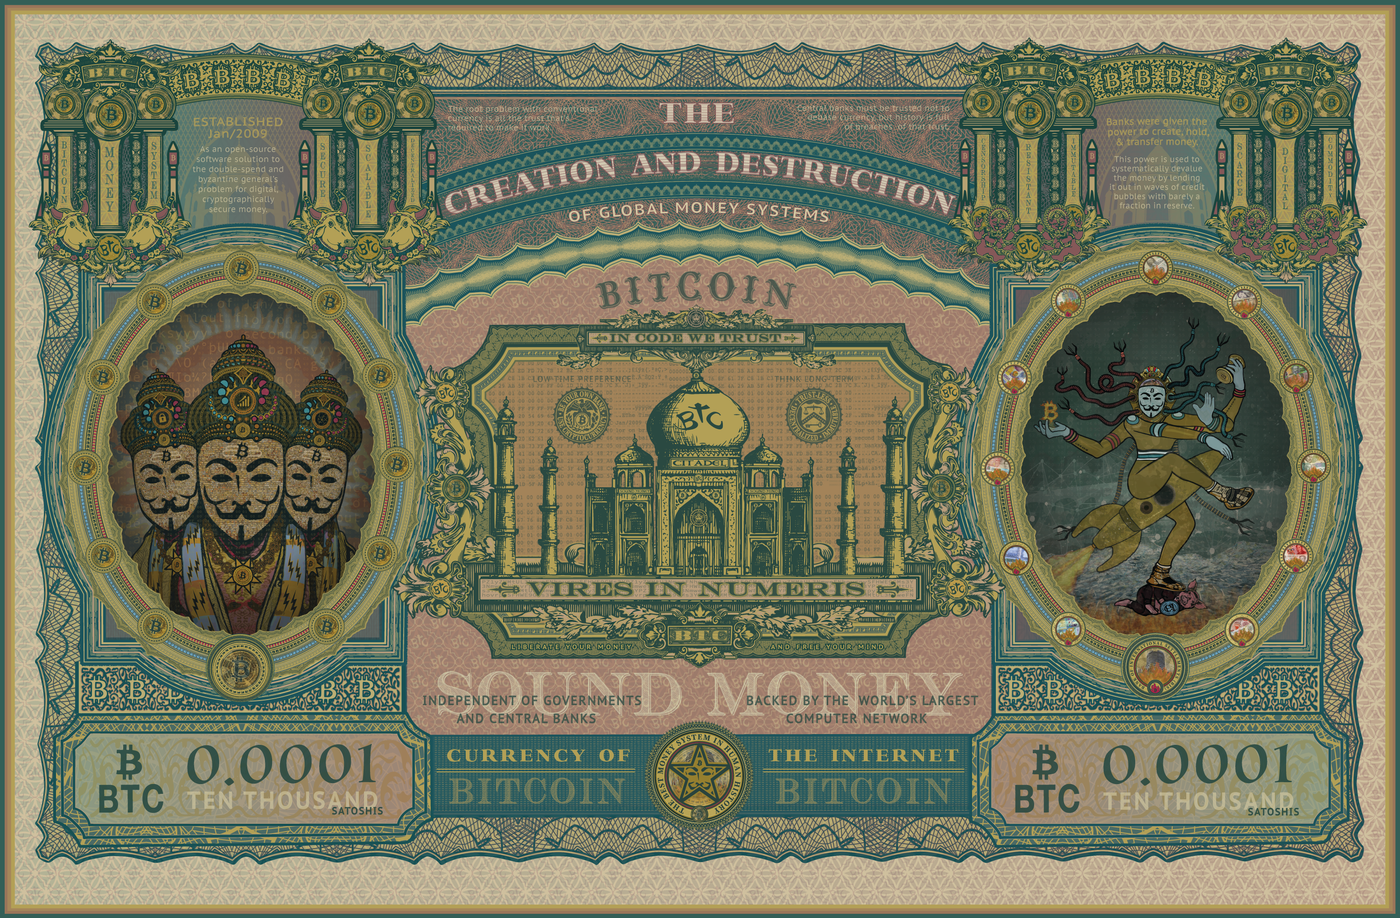 The Creation and Destruction of Global Money Systems (Bitcoin Art by Lucho Poletti)